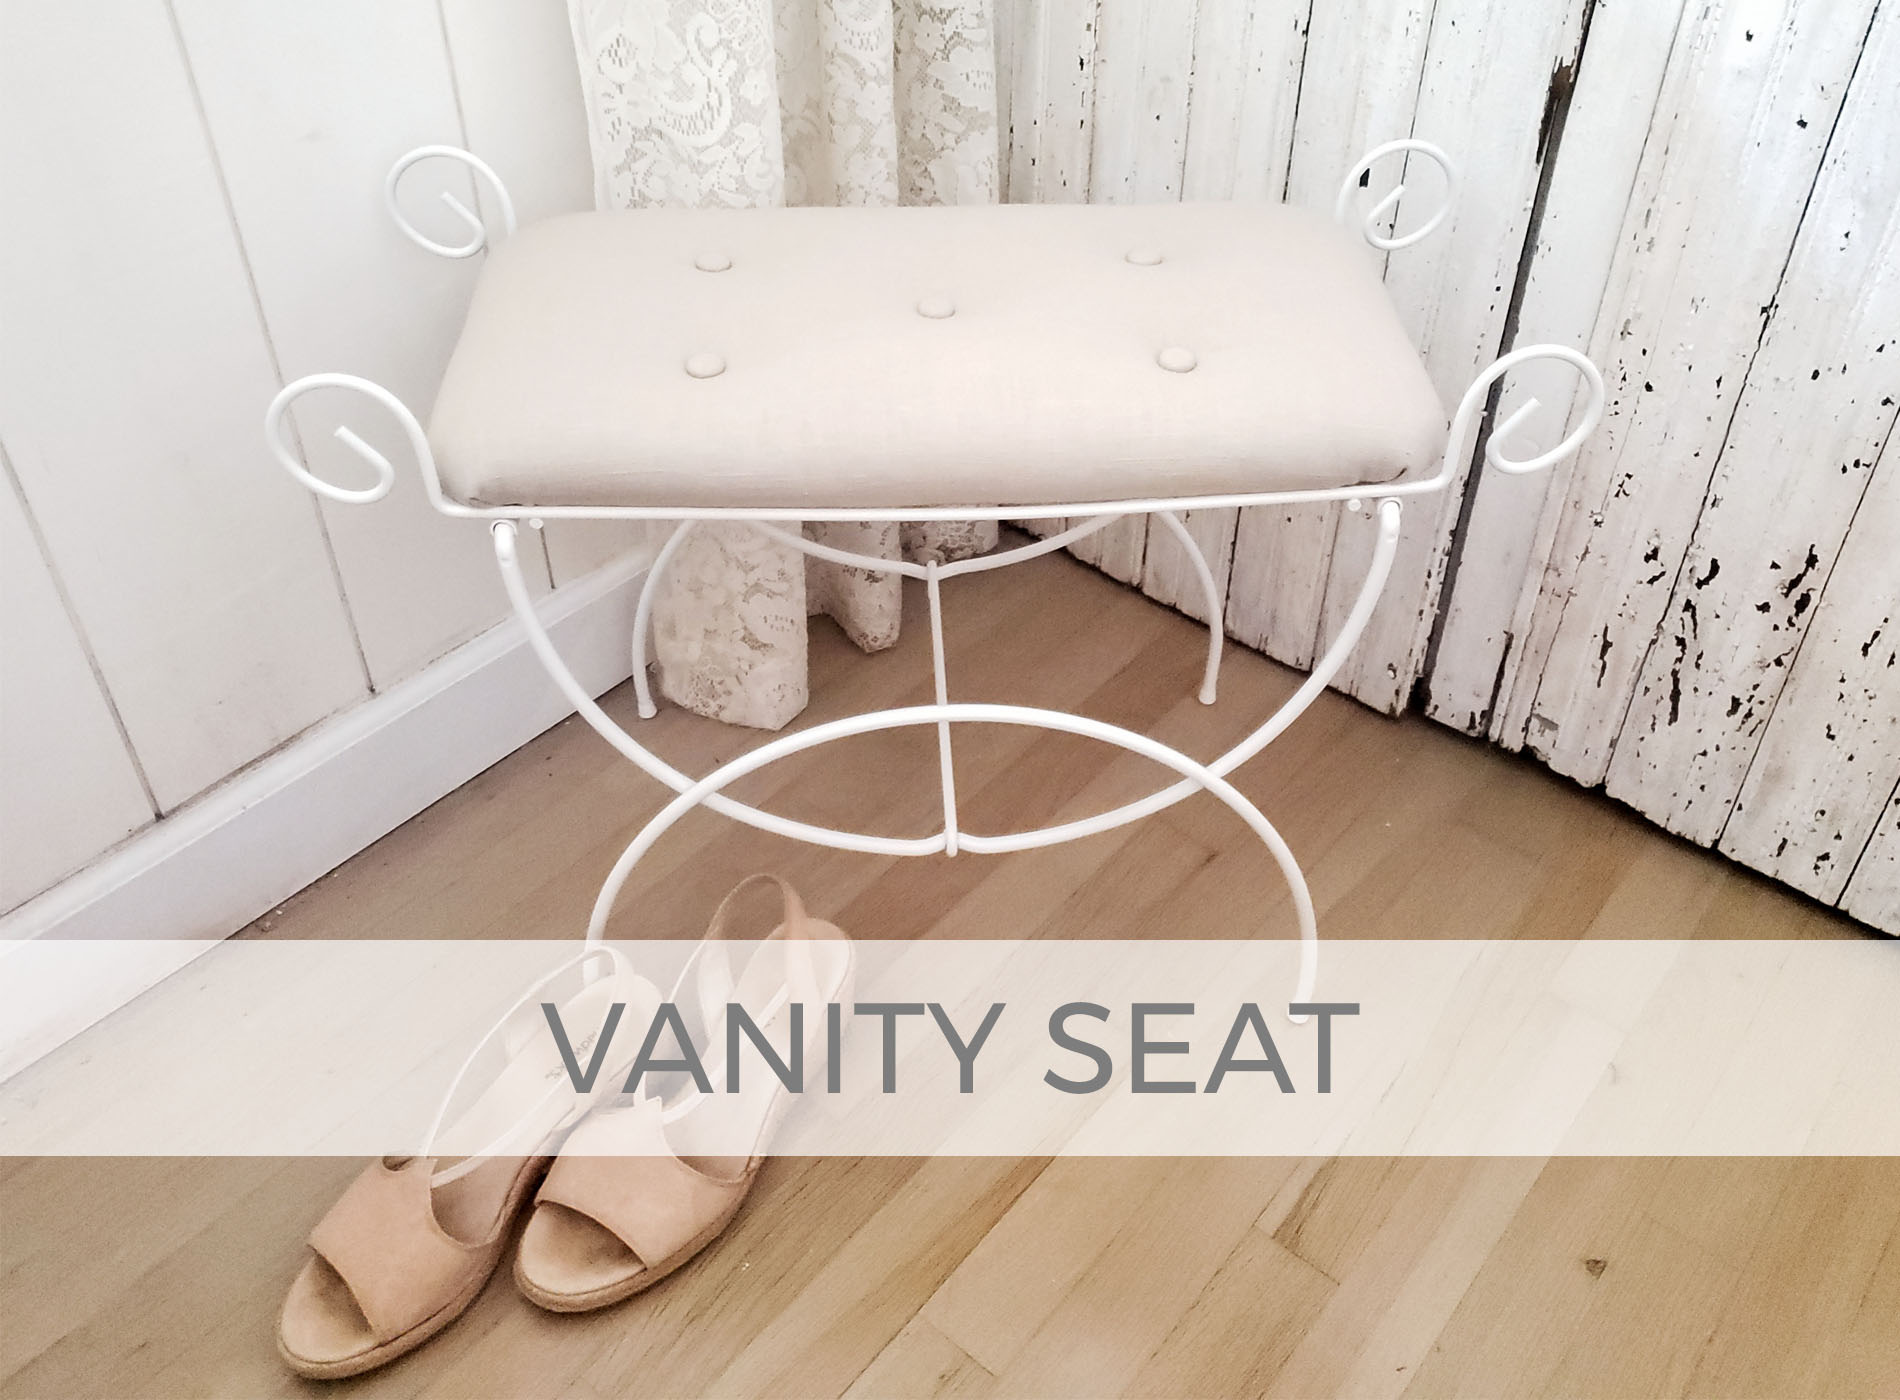 https://prodigalpieces.com/how-to-replace-a-vanity-seat/